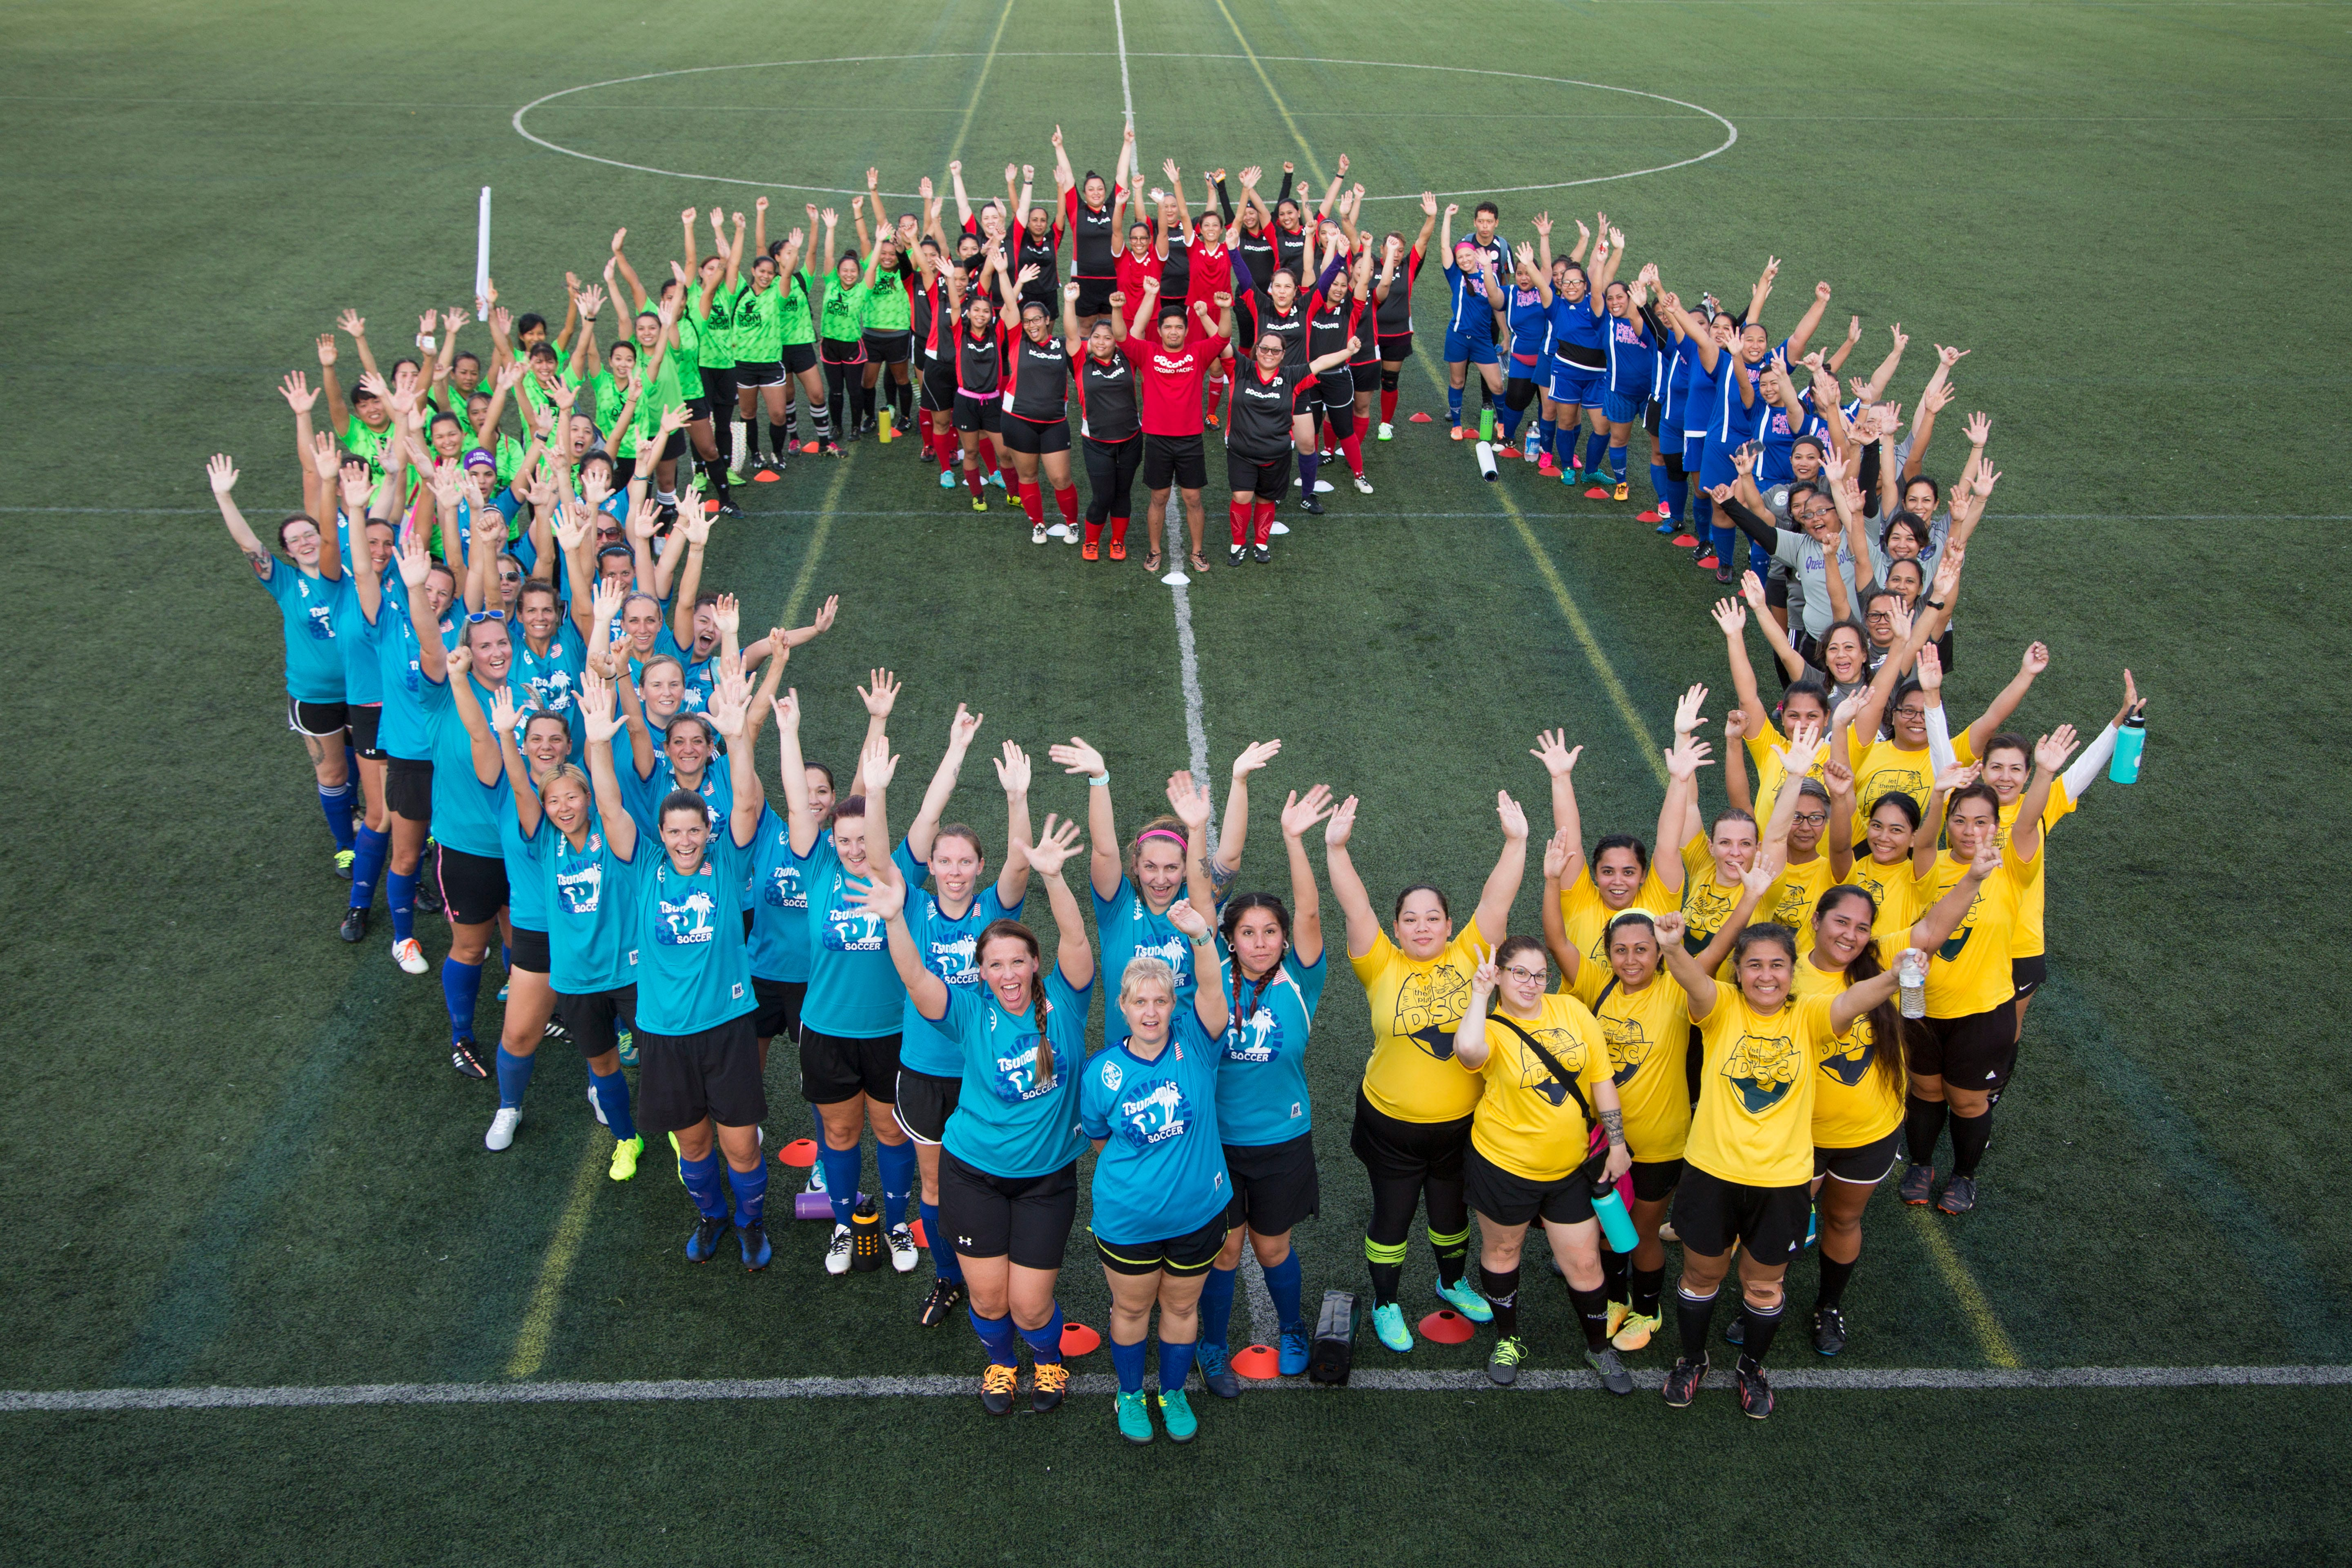 Teams participating in the 2018 Docomo Pacific Soccer Moms League pose for a group photo ahead of that year's Spring season matches in this file photo.